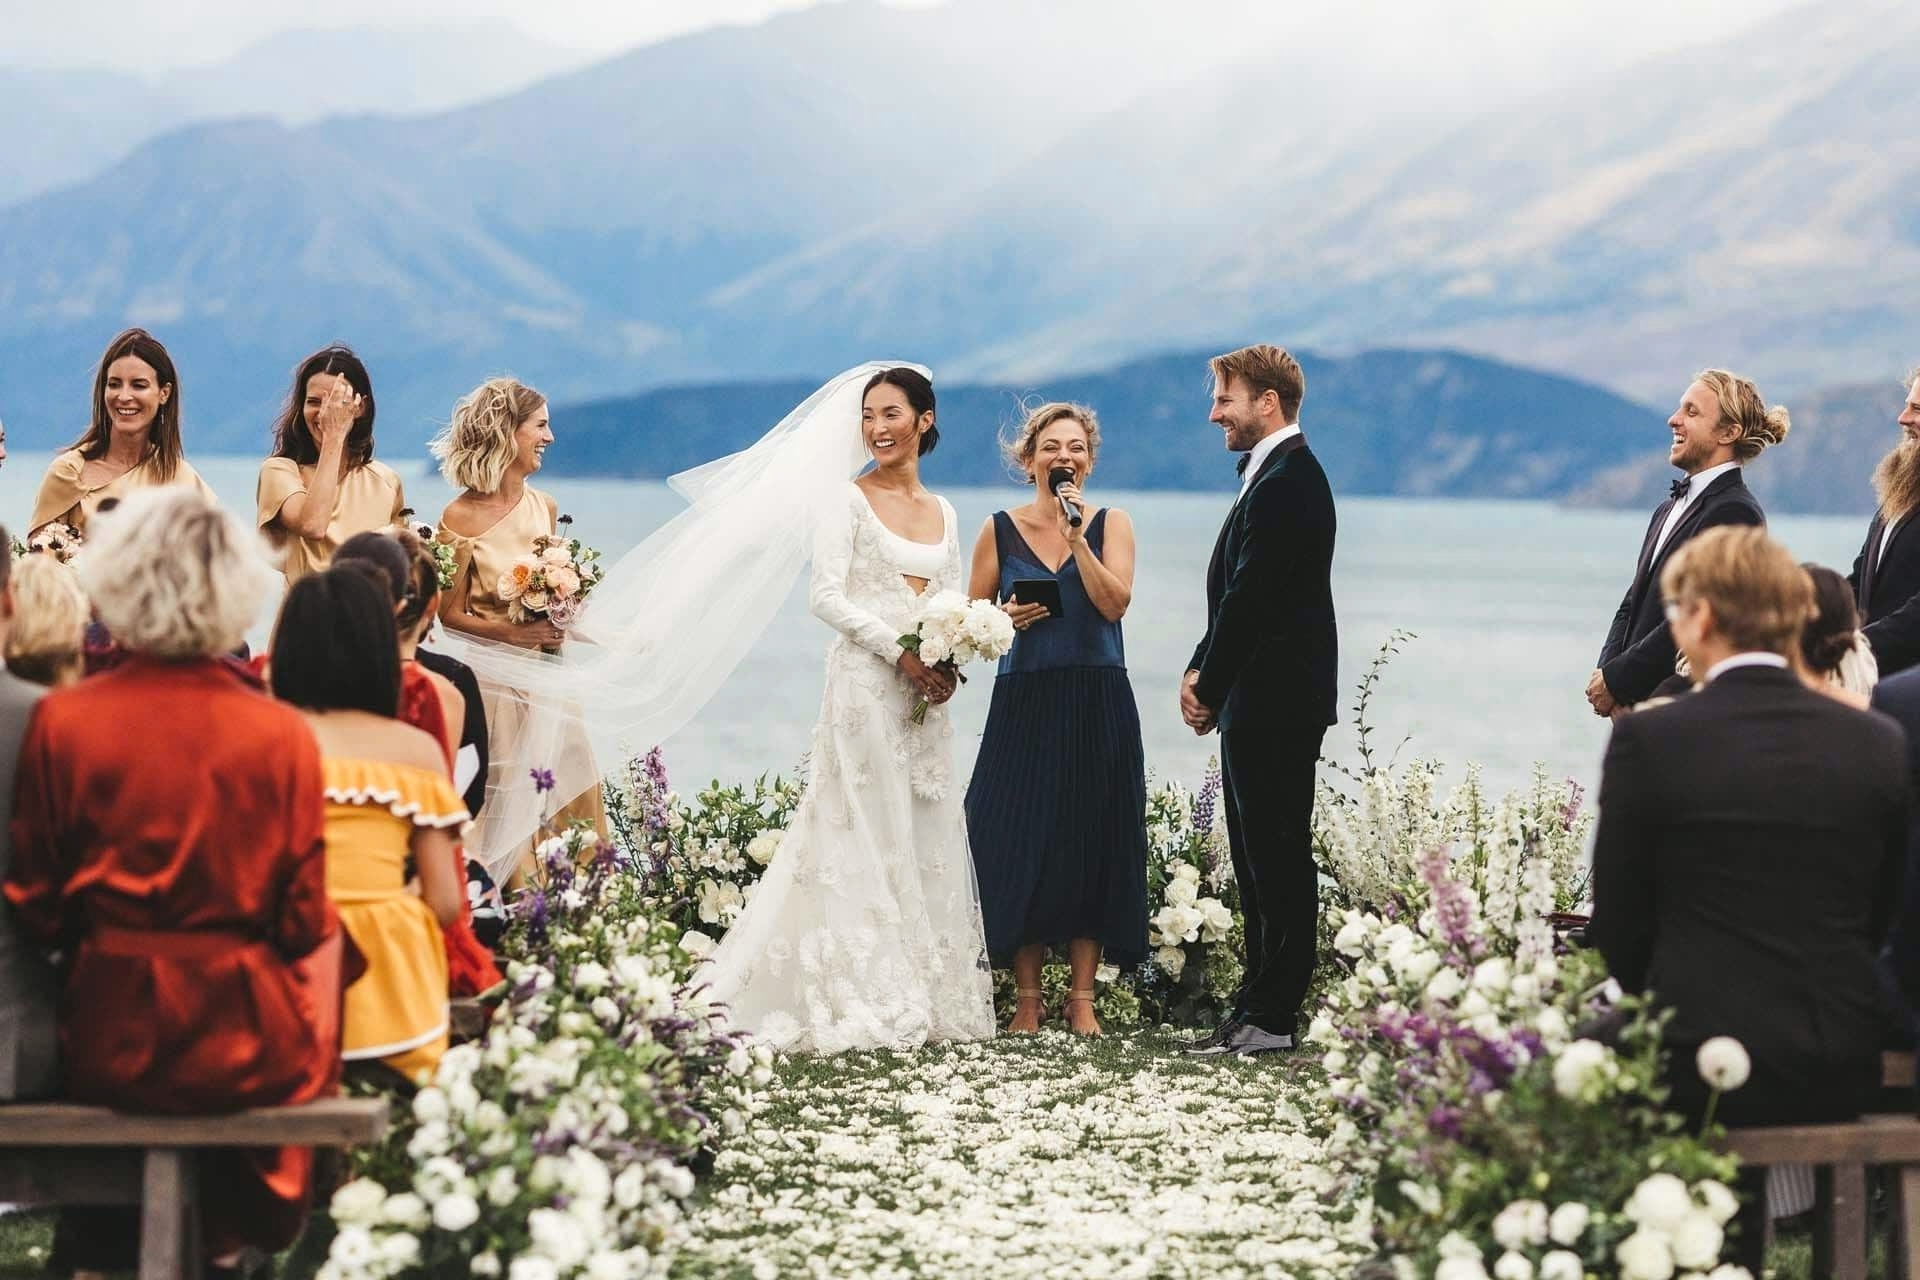 Top Canadian wedding photography trends